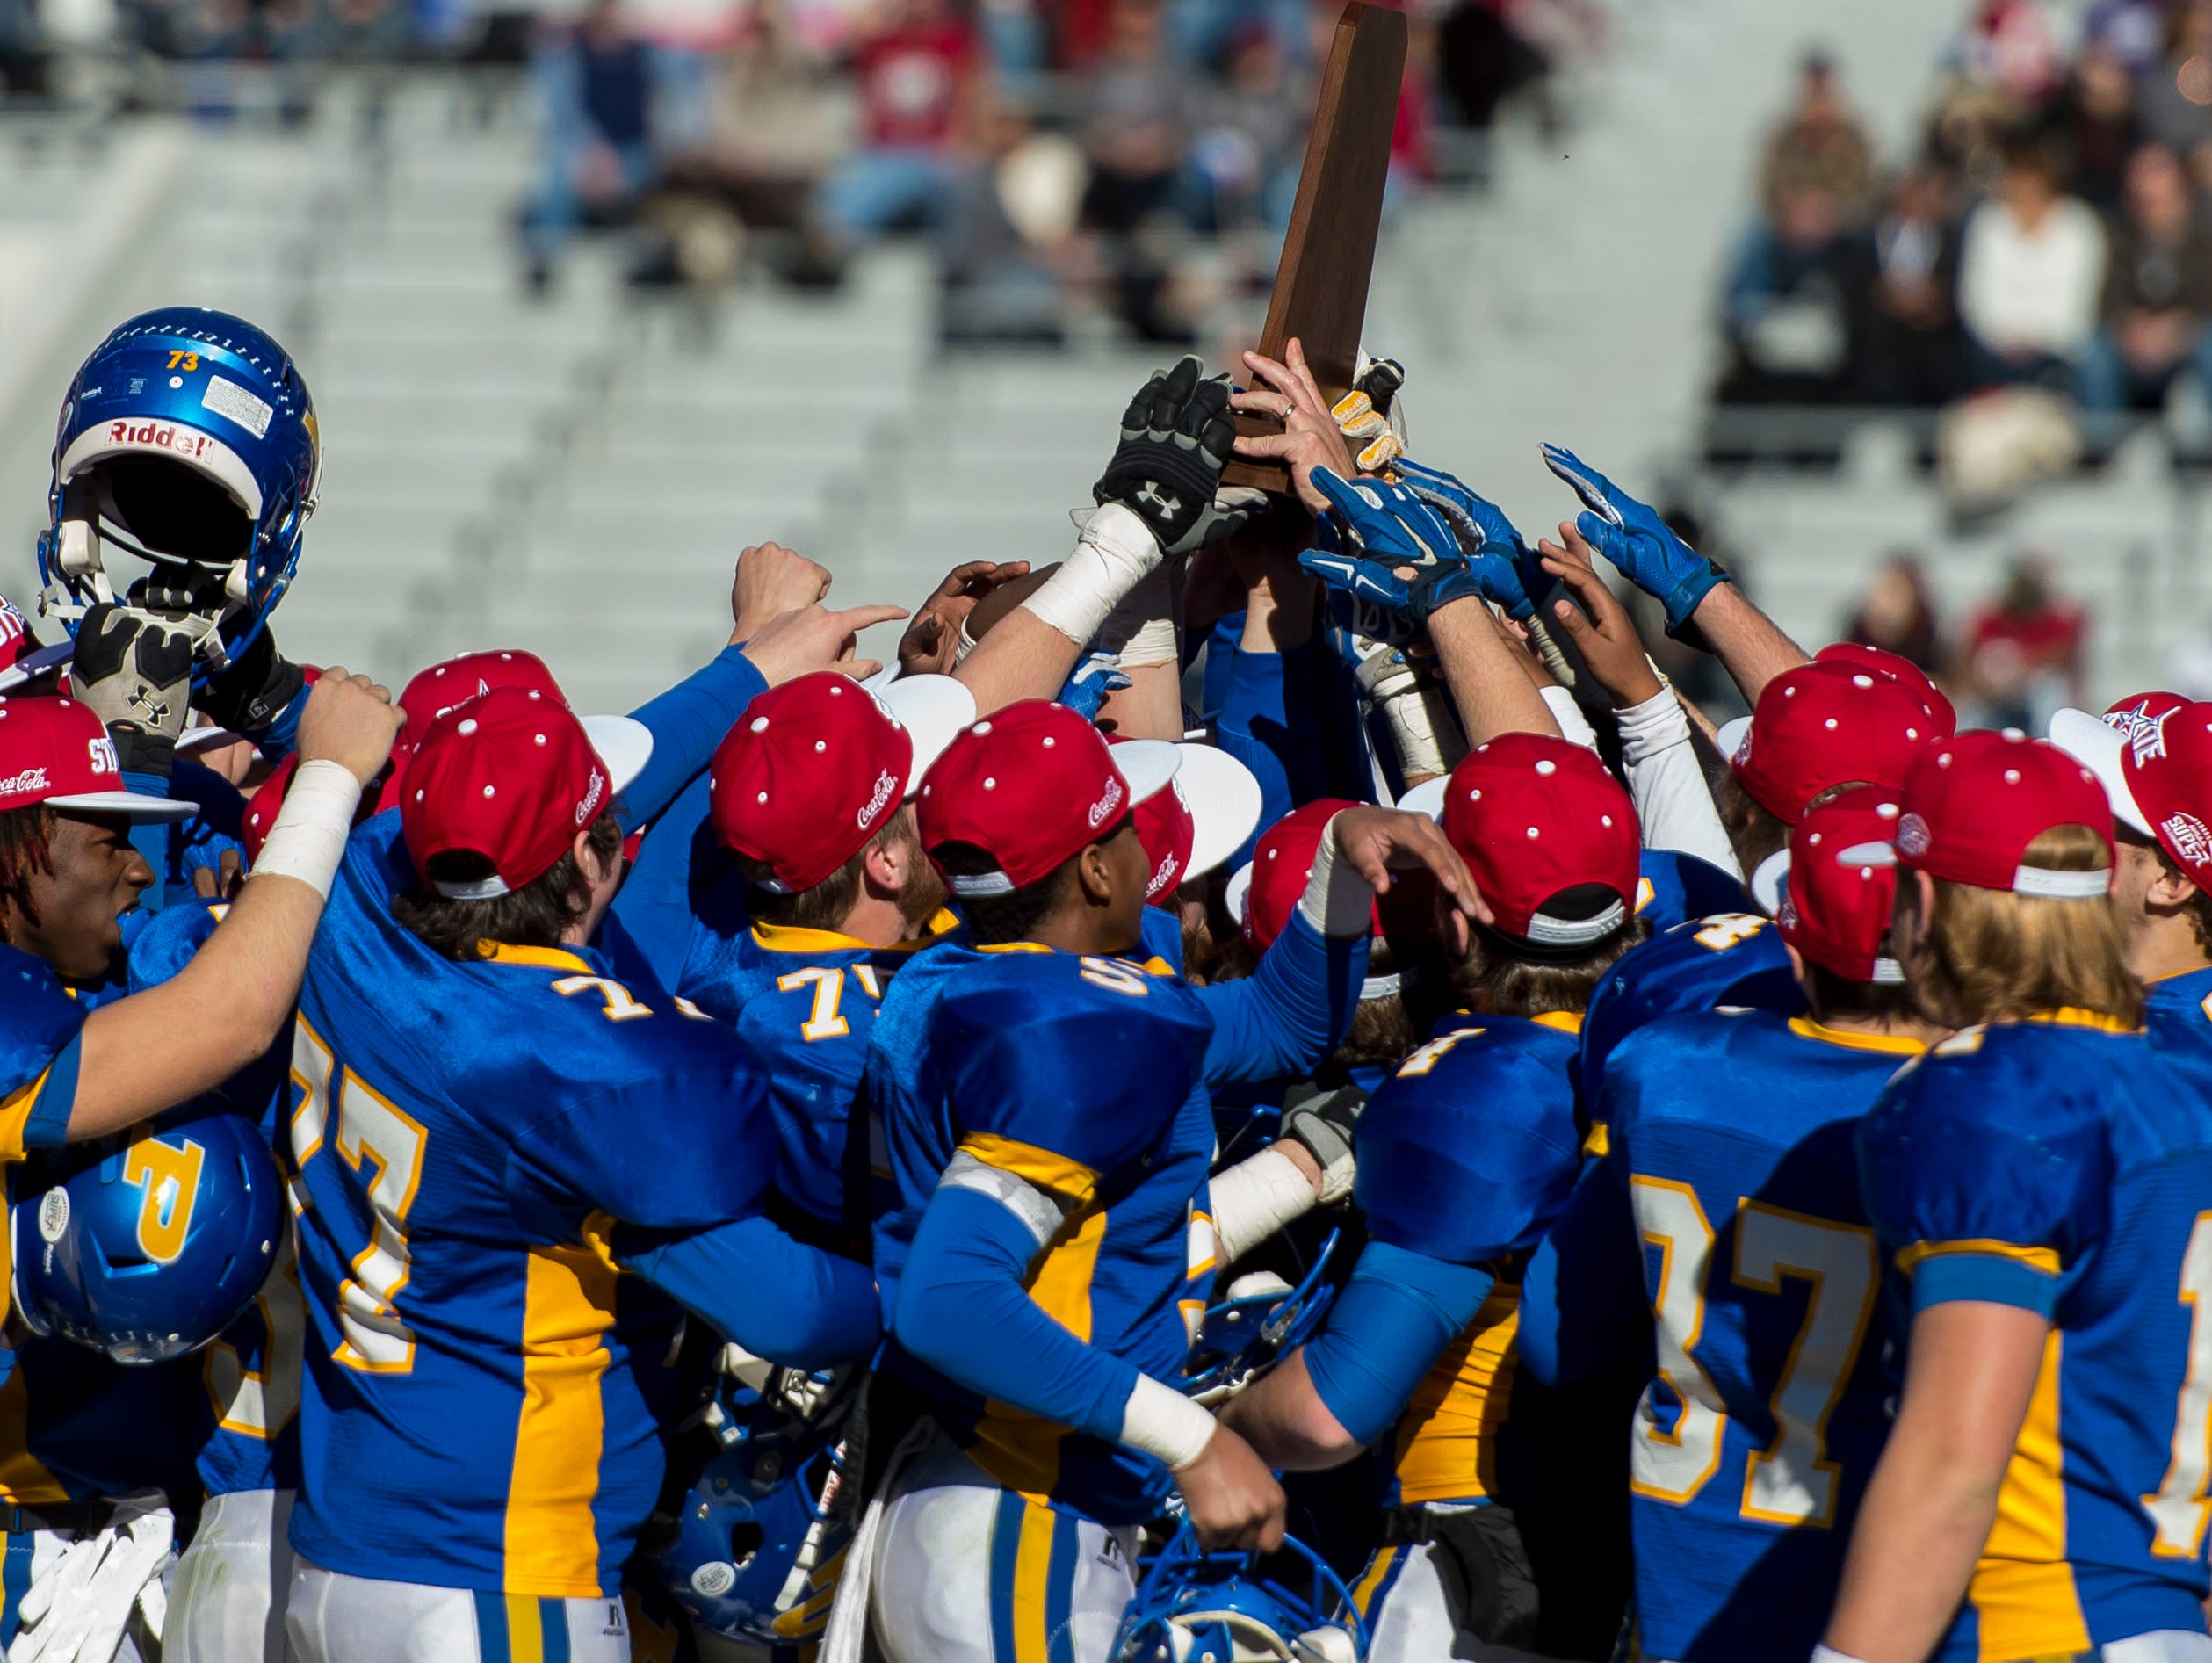 Piedmont celebrates their win over Bayside Academy in the AHSAA Super 7 Class 3A high school football championship game, Thursday, Dec. 3, 2015, at Bryant-Denny Stadium in Tuscaloosa, Ala. (Vasha Hunt/AL.com via AP) MAGS OUT; MANDATORY CREDIT